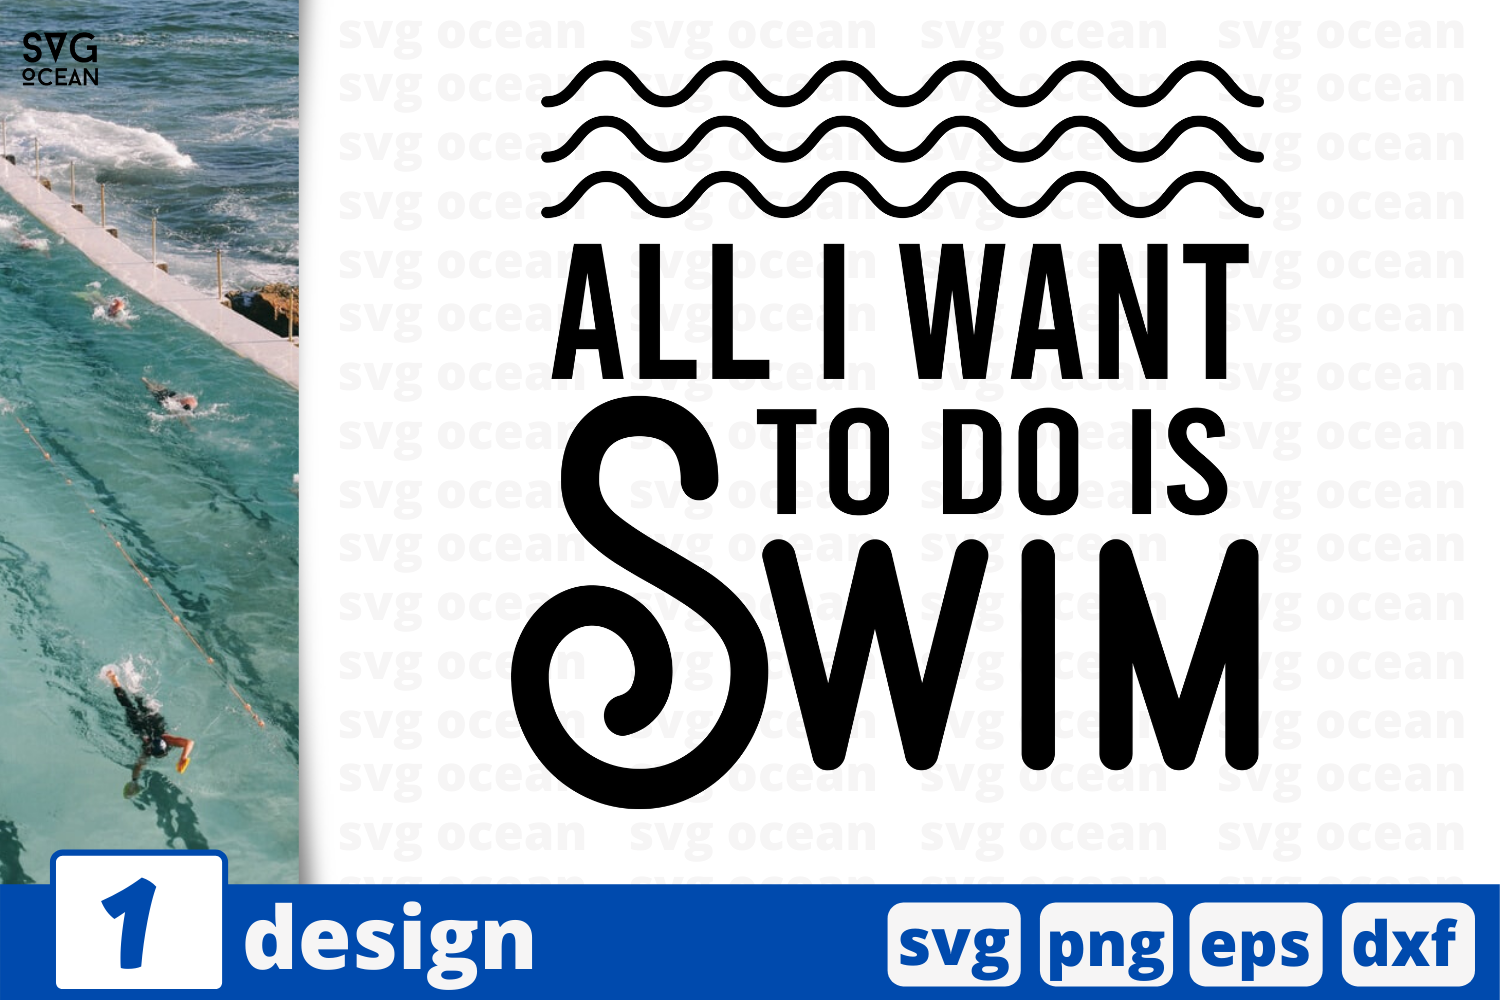 Download Free All I Want To Do Is Swim Quote Graphic By Svgocean Creative for Cricut Explore, Silhouette and other cutting machines.